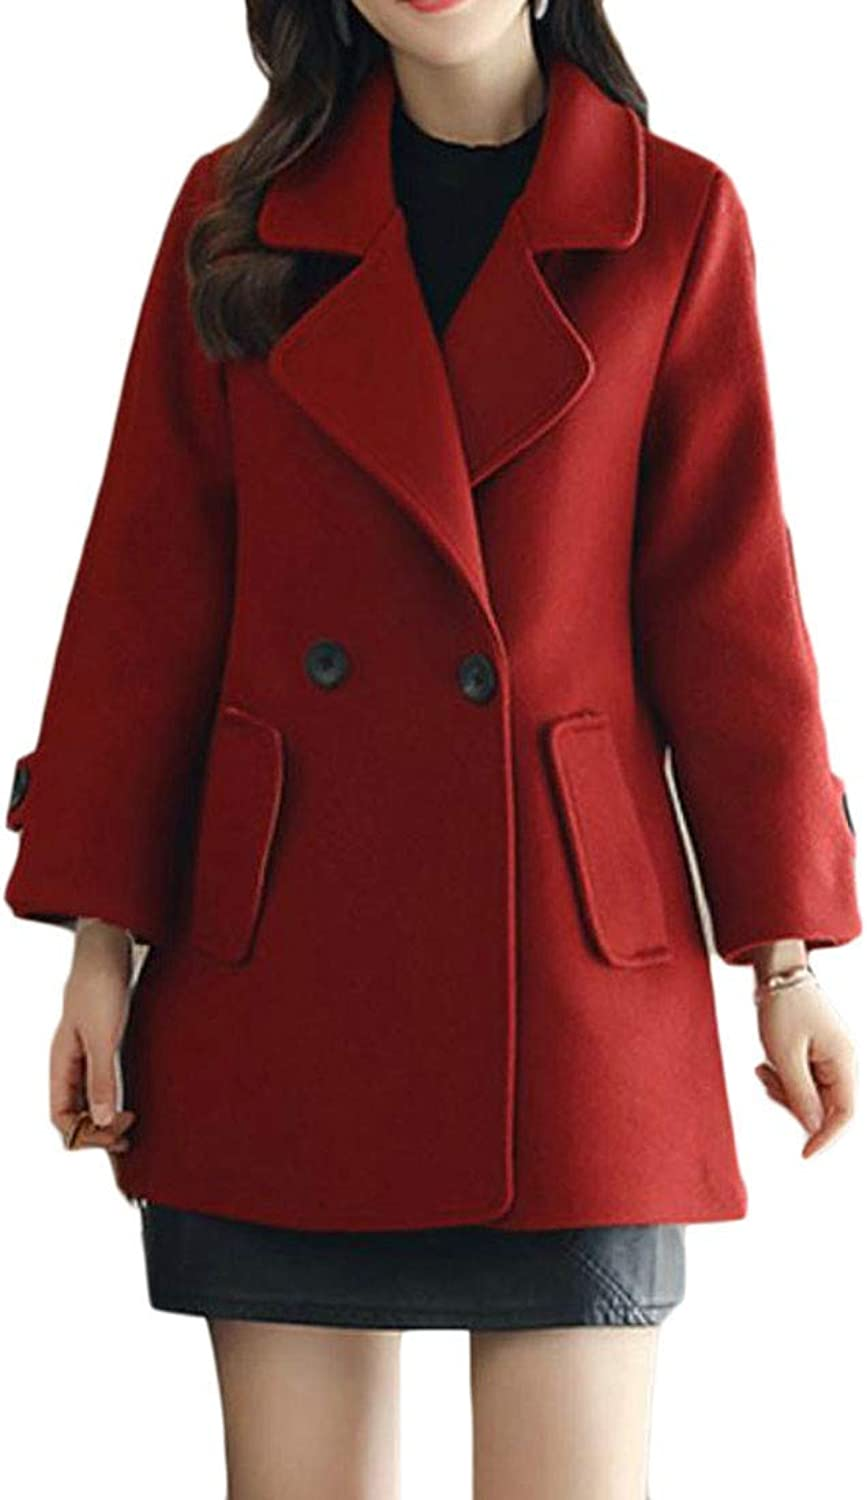 Joe Wenko Women Lapel Double Breasted Solid Woolen Casual Pea Coat Jacket